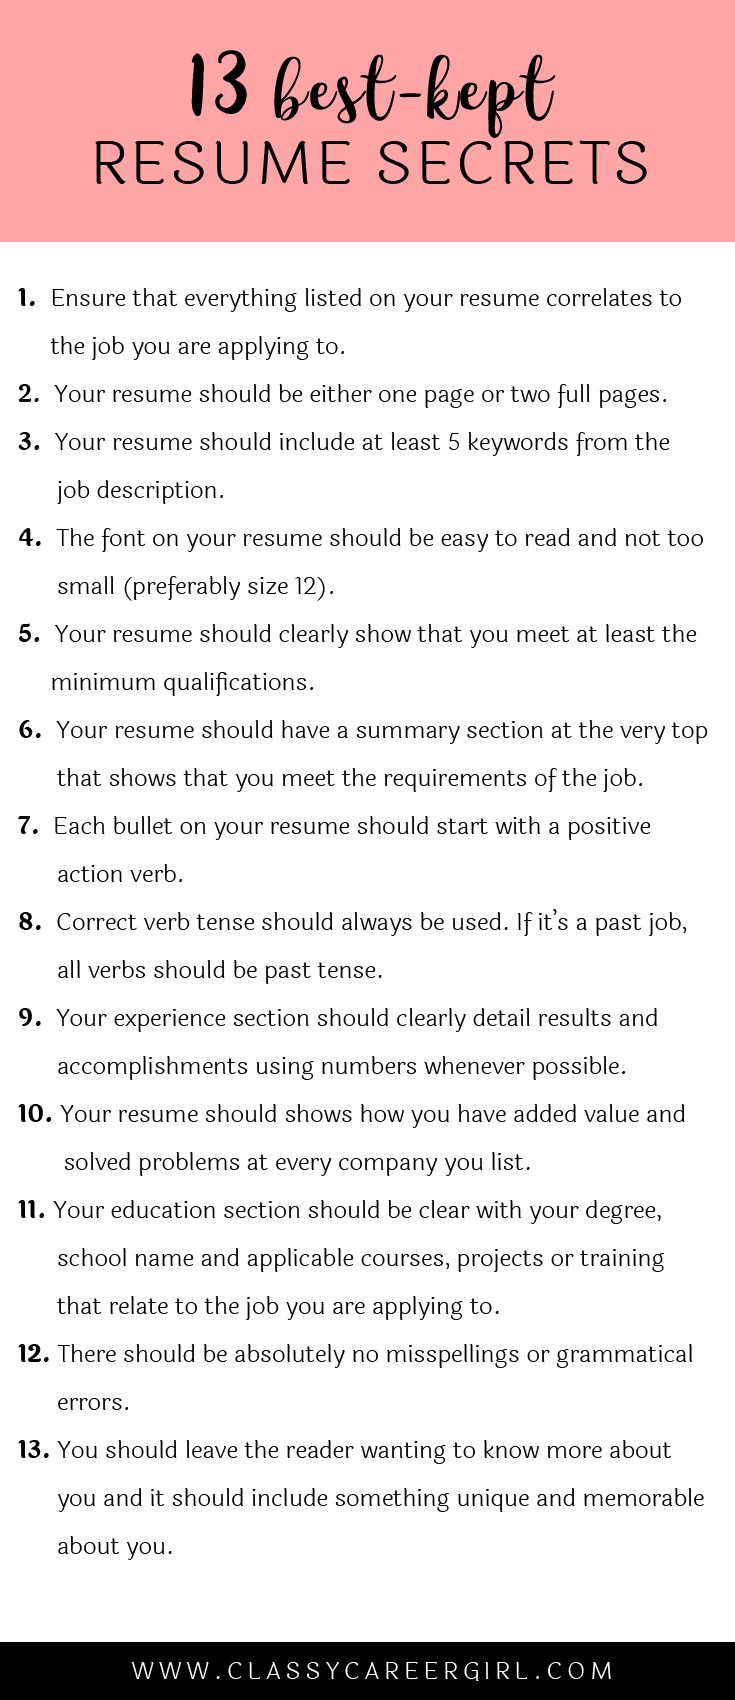 Picnictoimpeachus  Splendid  Ideas About Resume On Pinterest  Cv Format Resume Cv And  With Exquisite Some Hiring Managers Will Toss Your Resume Out If You Dont Know These  With Archaic Brand Ambassador Resume Also Best Resume Formats In Addition Best Free Resume Templates And Resume Template Pdf As Well As Personal Resume Additionally How To Make A Resume Cover Letter From Pinterestcom With Picnictoimpeachus  Exquisite  Ideas About Resume On Pinterest  Cv Format Resume Cv And  With Archaic Some Hiring Managers Will Toss Your Resume Out If You Dont Know These  And Splendid Brand Ambassador Resume Also Best Resume Formats In Addition Best Free Resume Templates From Pinterestcom